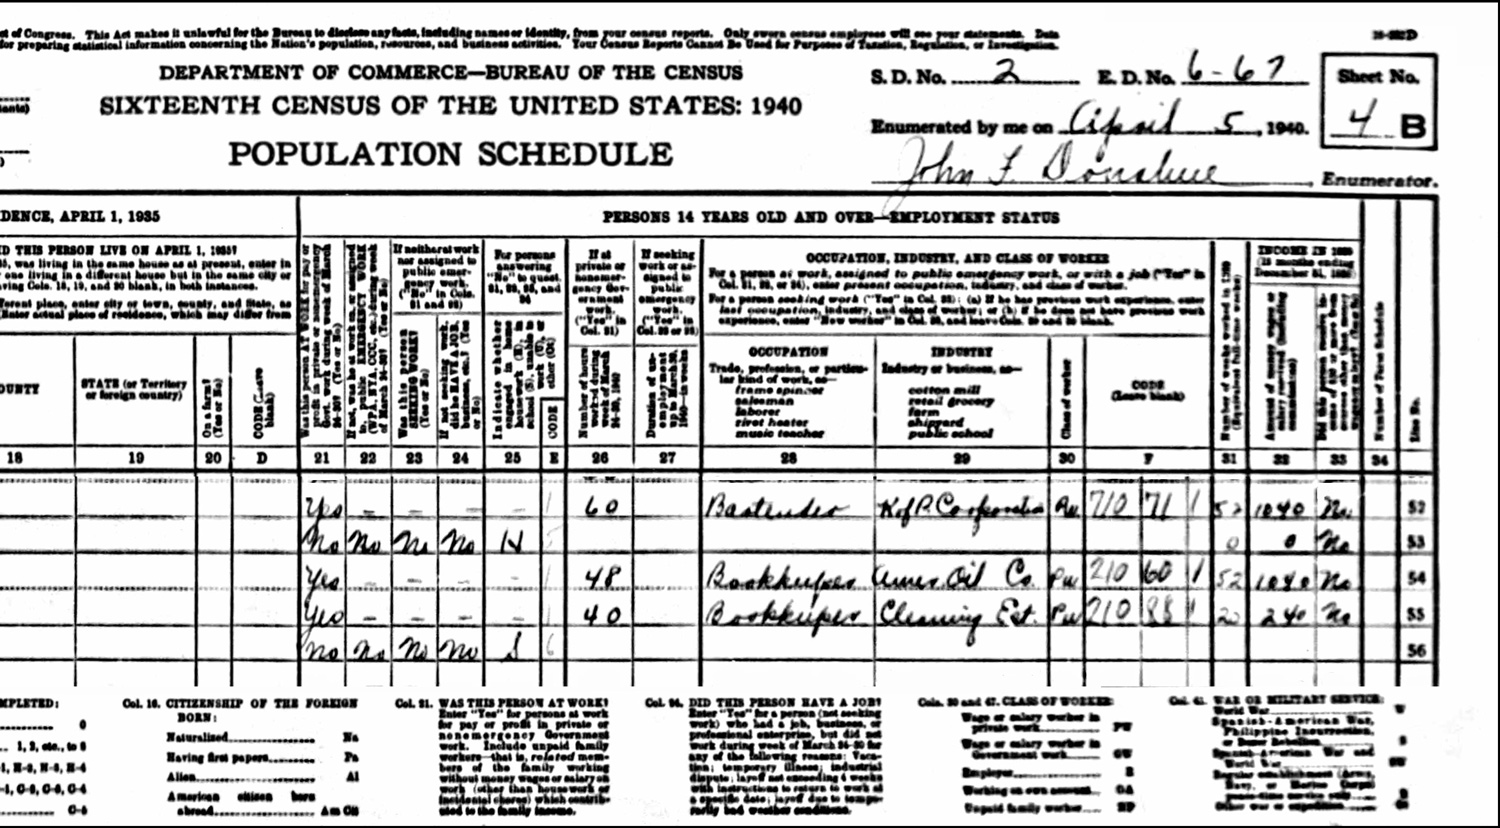 1940 US Federal Census Record for the Jan Jakubowski Household (Right)